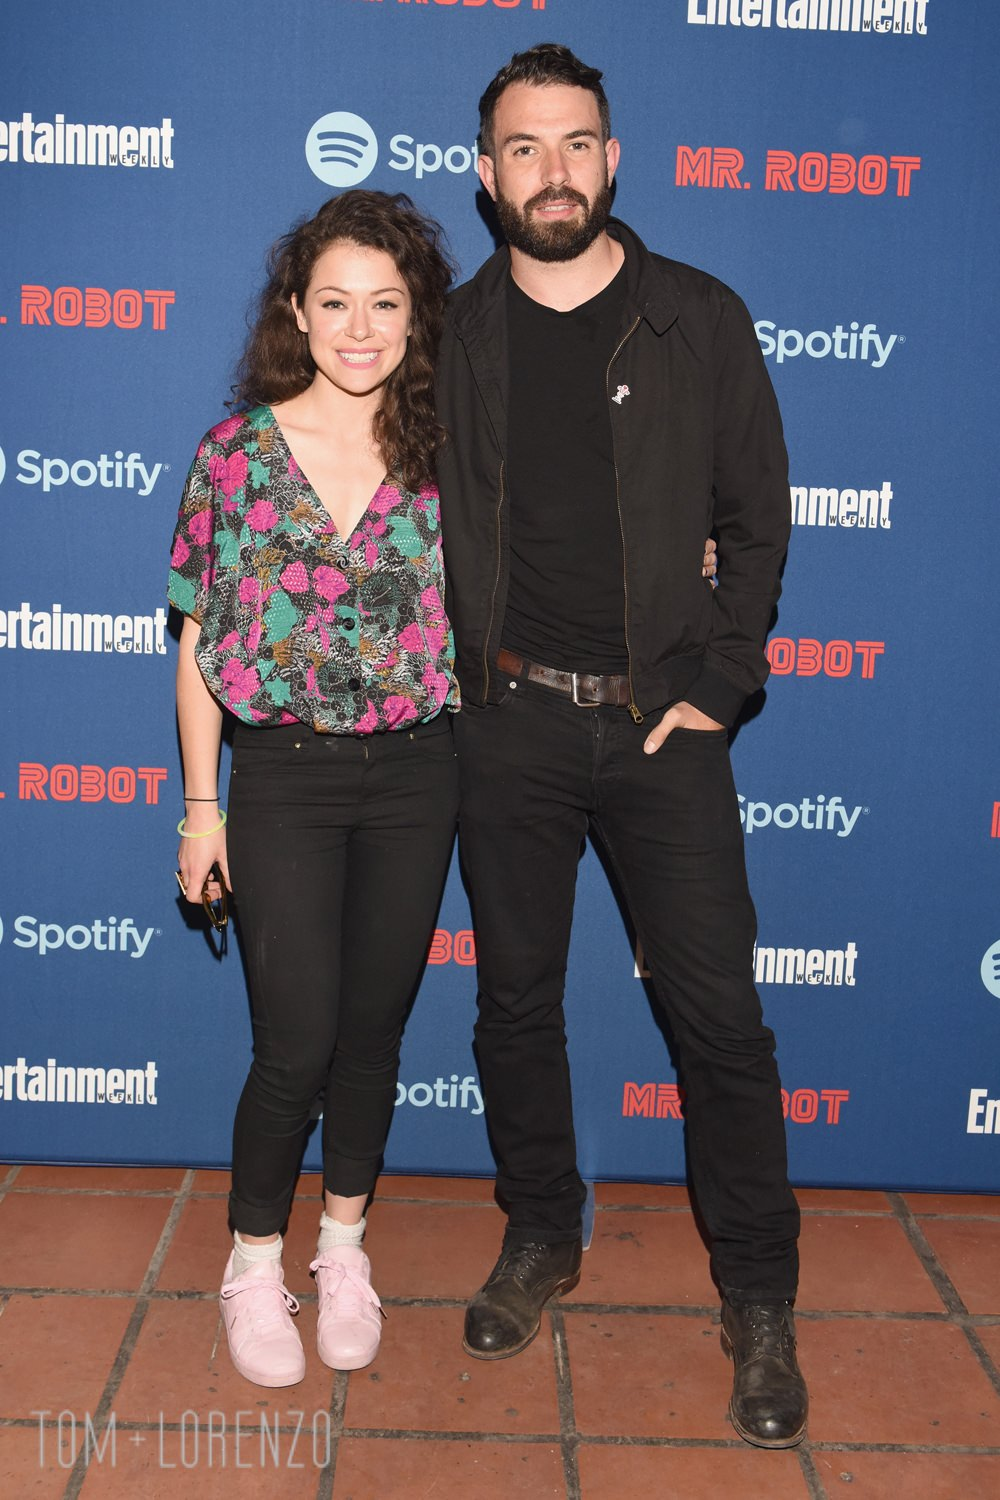 Tatiana-Maslany-Tom-Cullen-Entertainment-Weekly-Mr-Robot-Dinner-Red-Carpet-Fashion-Tom-Lorenzo-Site (1)